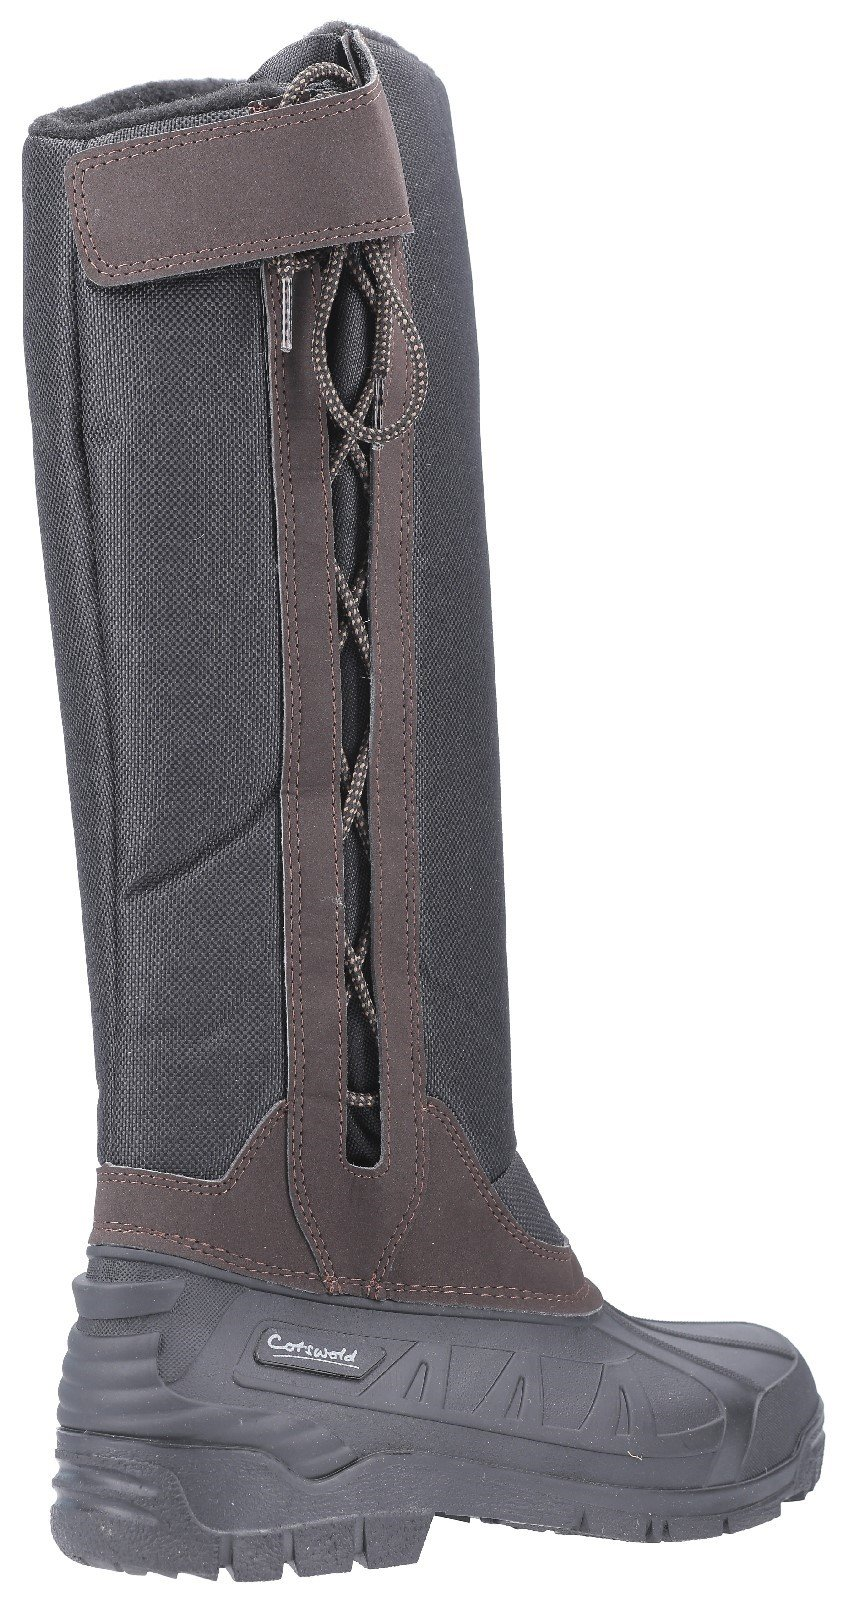 Cotswold Unisex Blockley Slip On Boot Brown 27212 - Brown 3